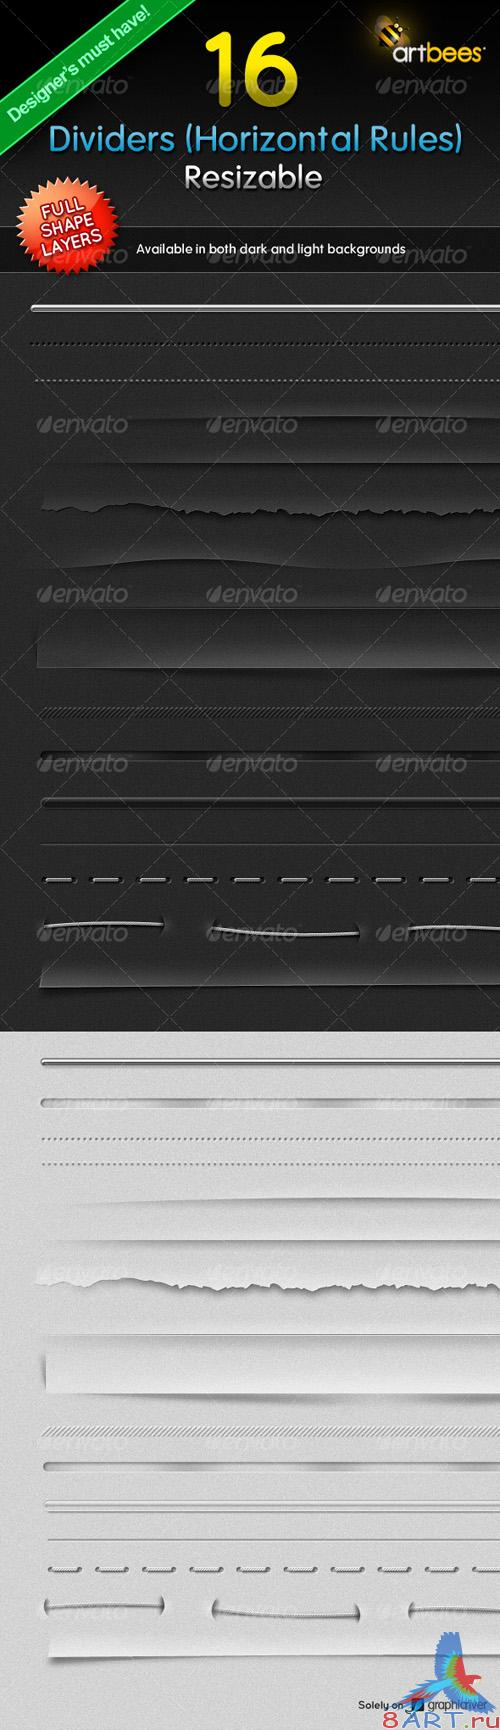 16 Dividers (Horizontal Rules) - Resizable - GraphicRiver